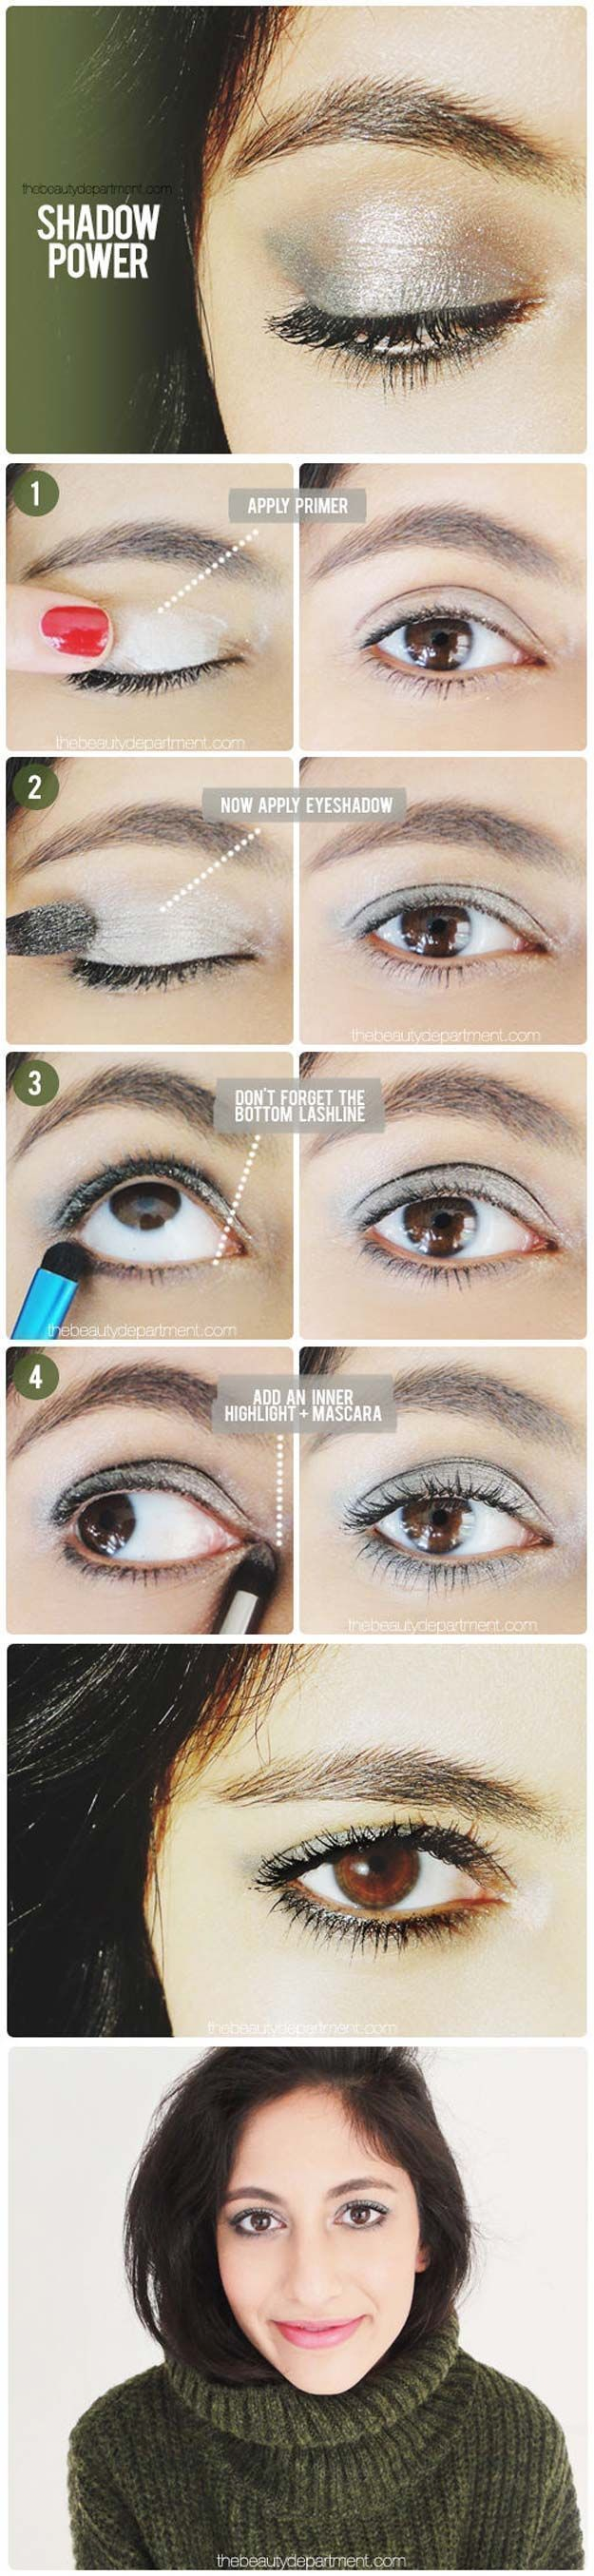 Best Eyeshadow Tutorials - Make It Brighter! - Easy Step by Step How To For Eye Shadow - Cool Makeup Tricks and Eye Makeup Tutorial With Instructions - Quick Ways to Do Smoky Eye, Natural Makeup, Looks for Day and Evening, Brown and Blue Eyes - Cool Ideas for Beginners and Teens http://diyprojectsforteens.com/best-eyeshadow-tutorials #naturaleyemakeup #eyeshadowsideas #easyeyemakeup